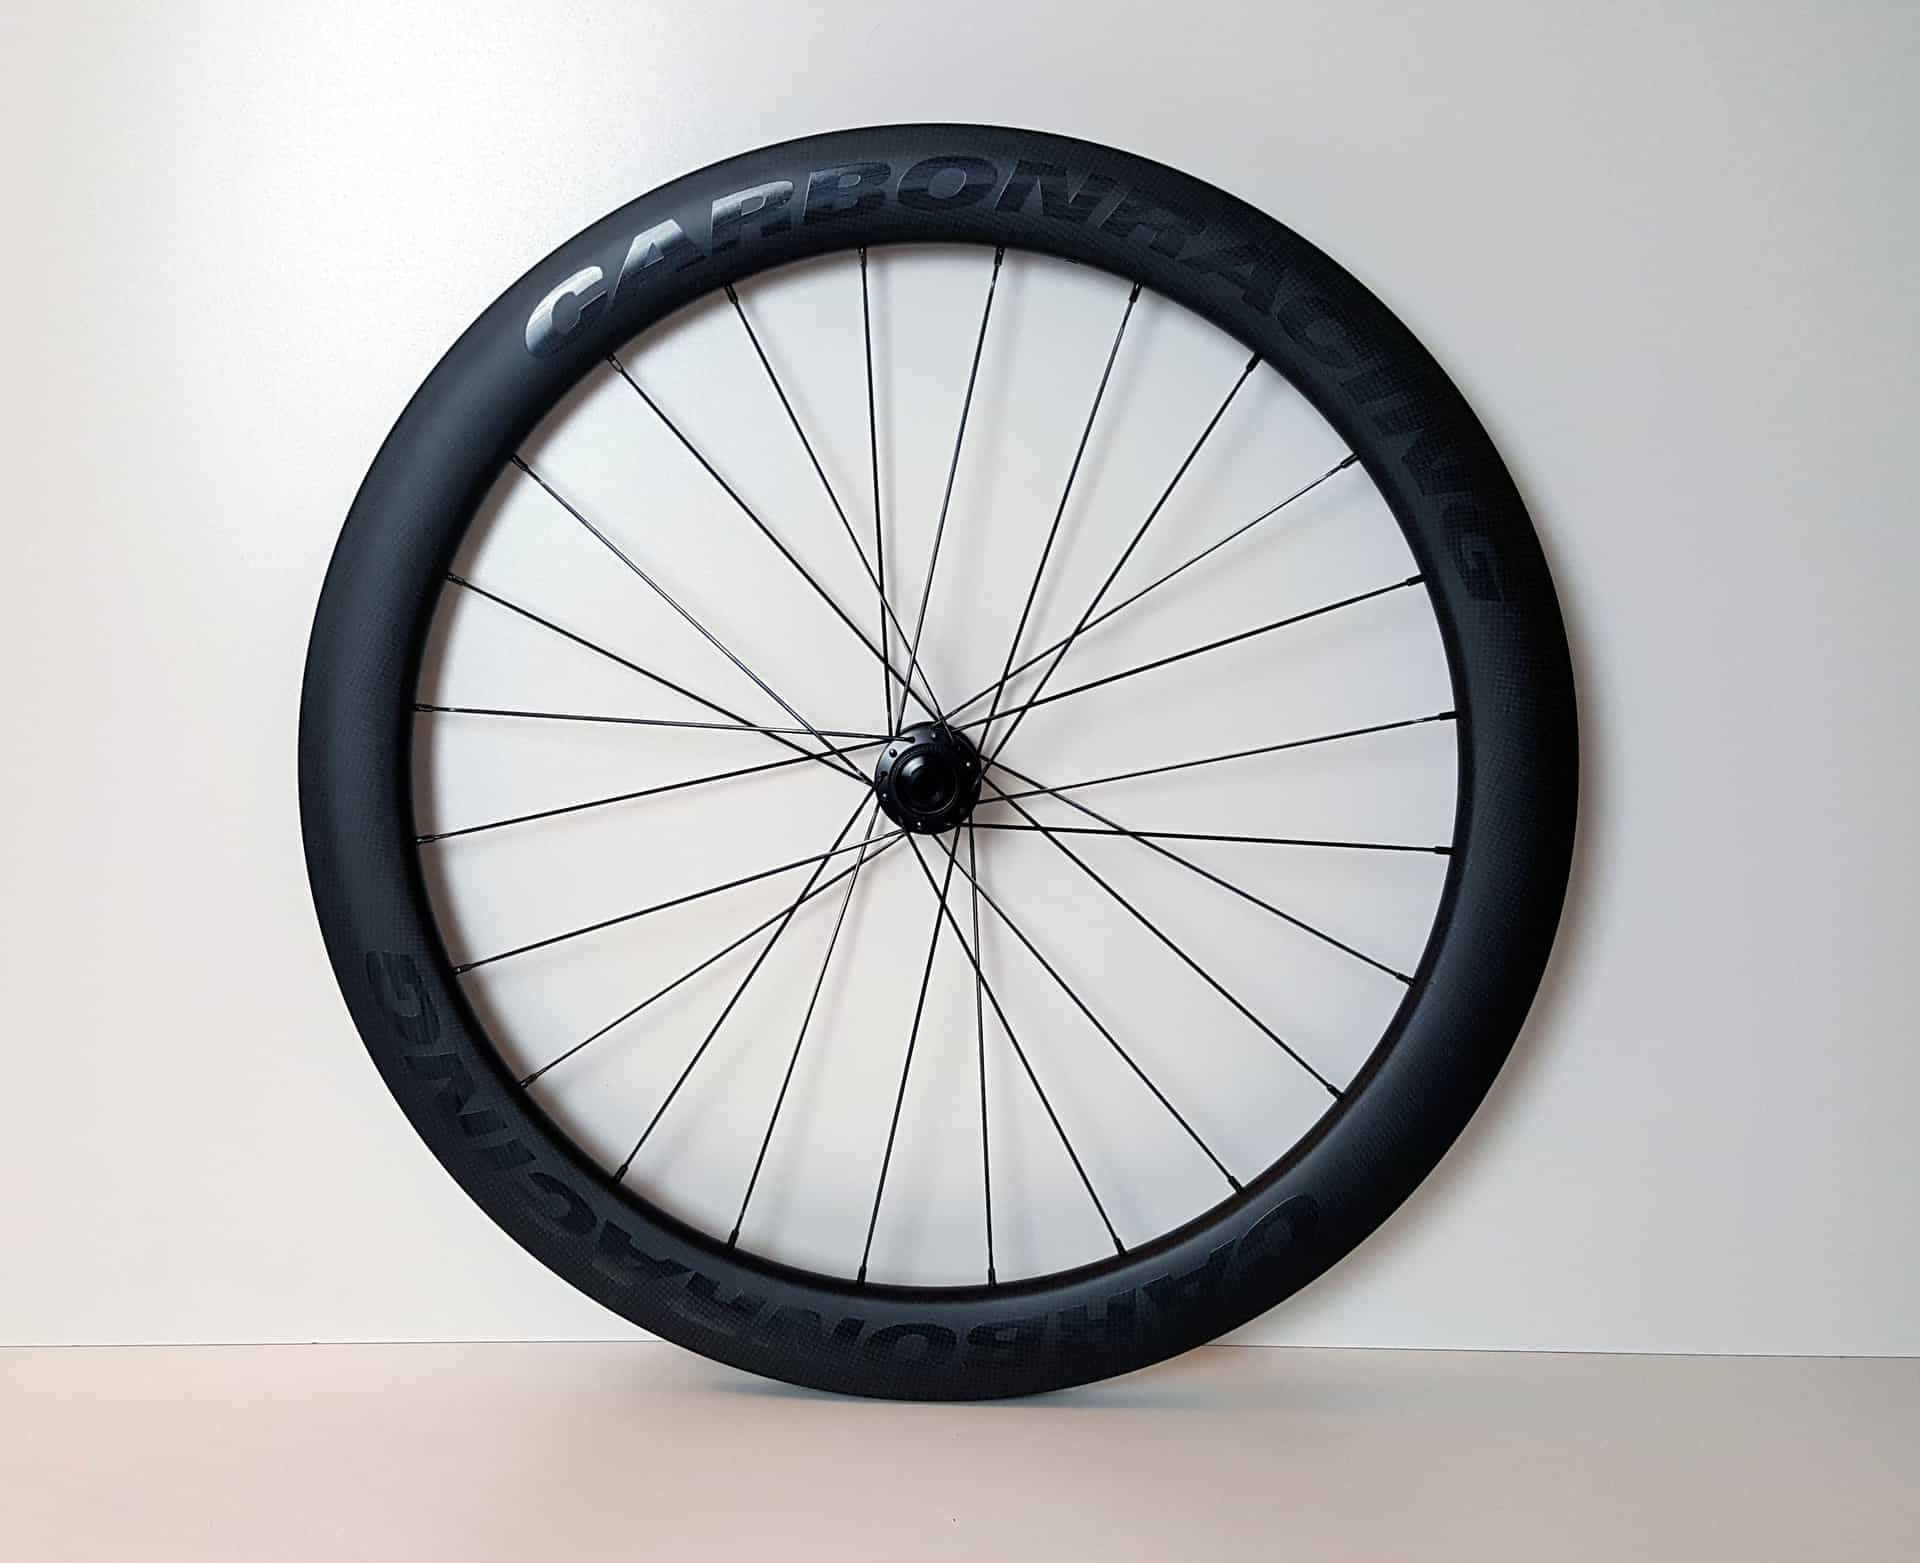 CD5-55 voorwiel tubeless ready